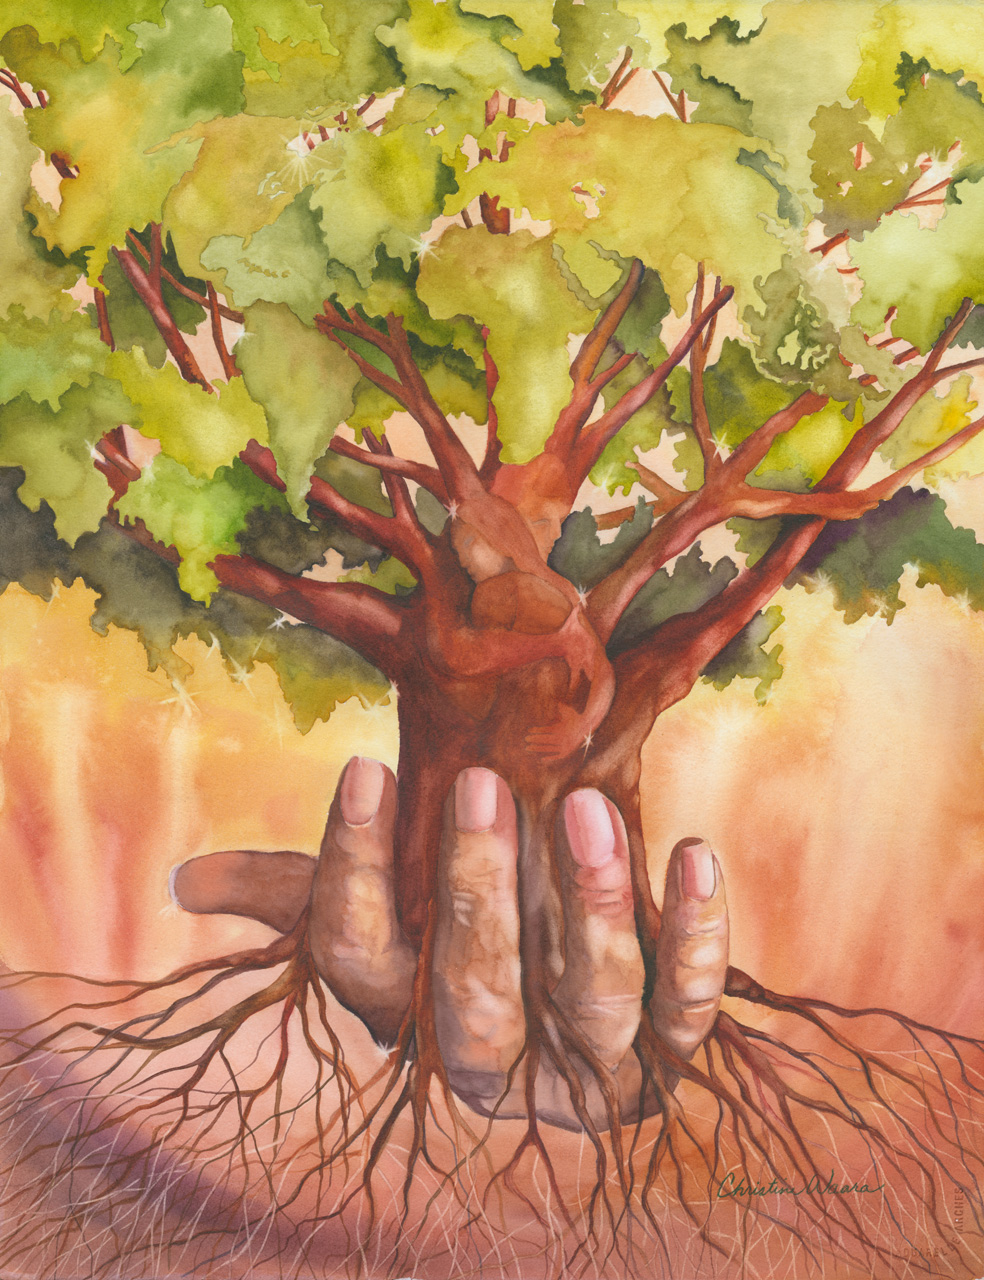 Watercolor painting of a hand holding a tree with hidden images within it